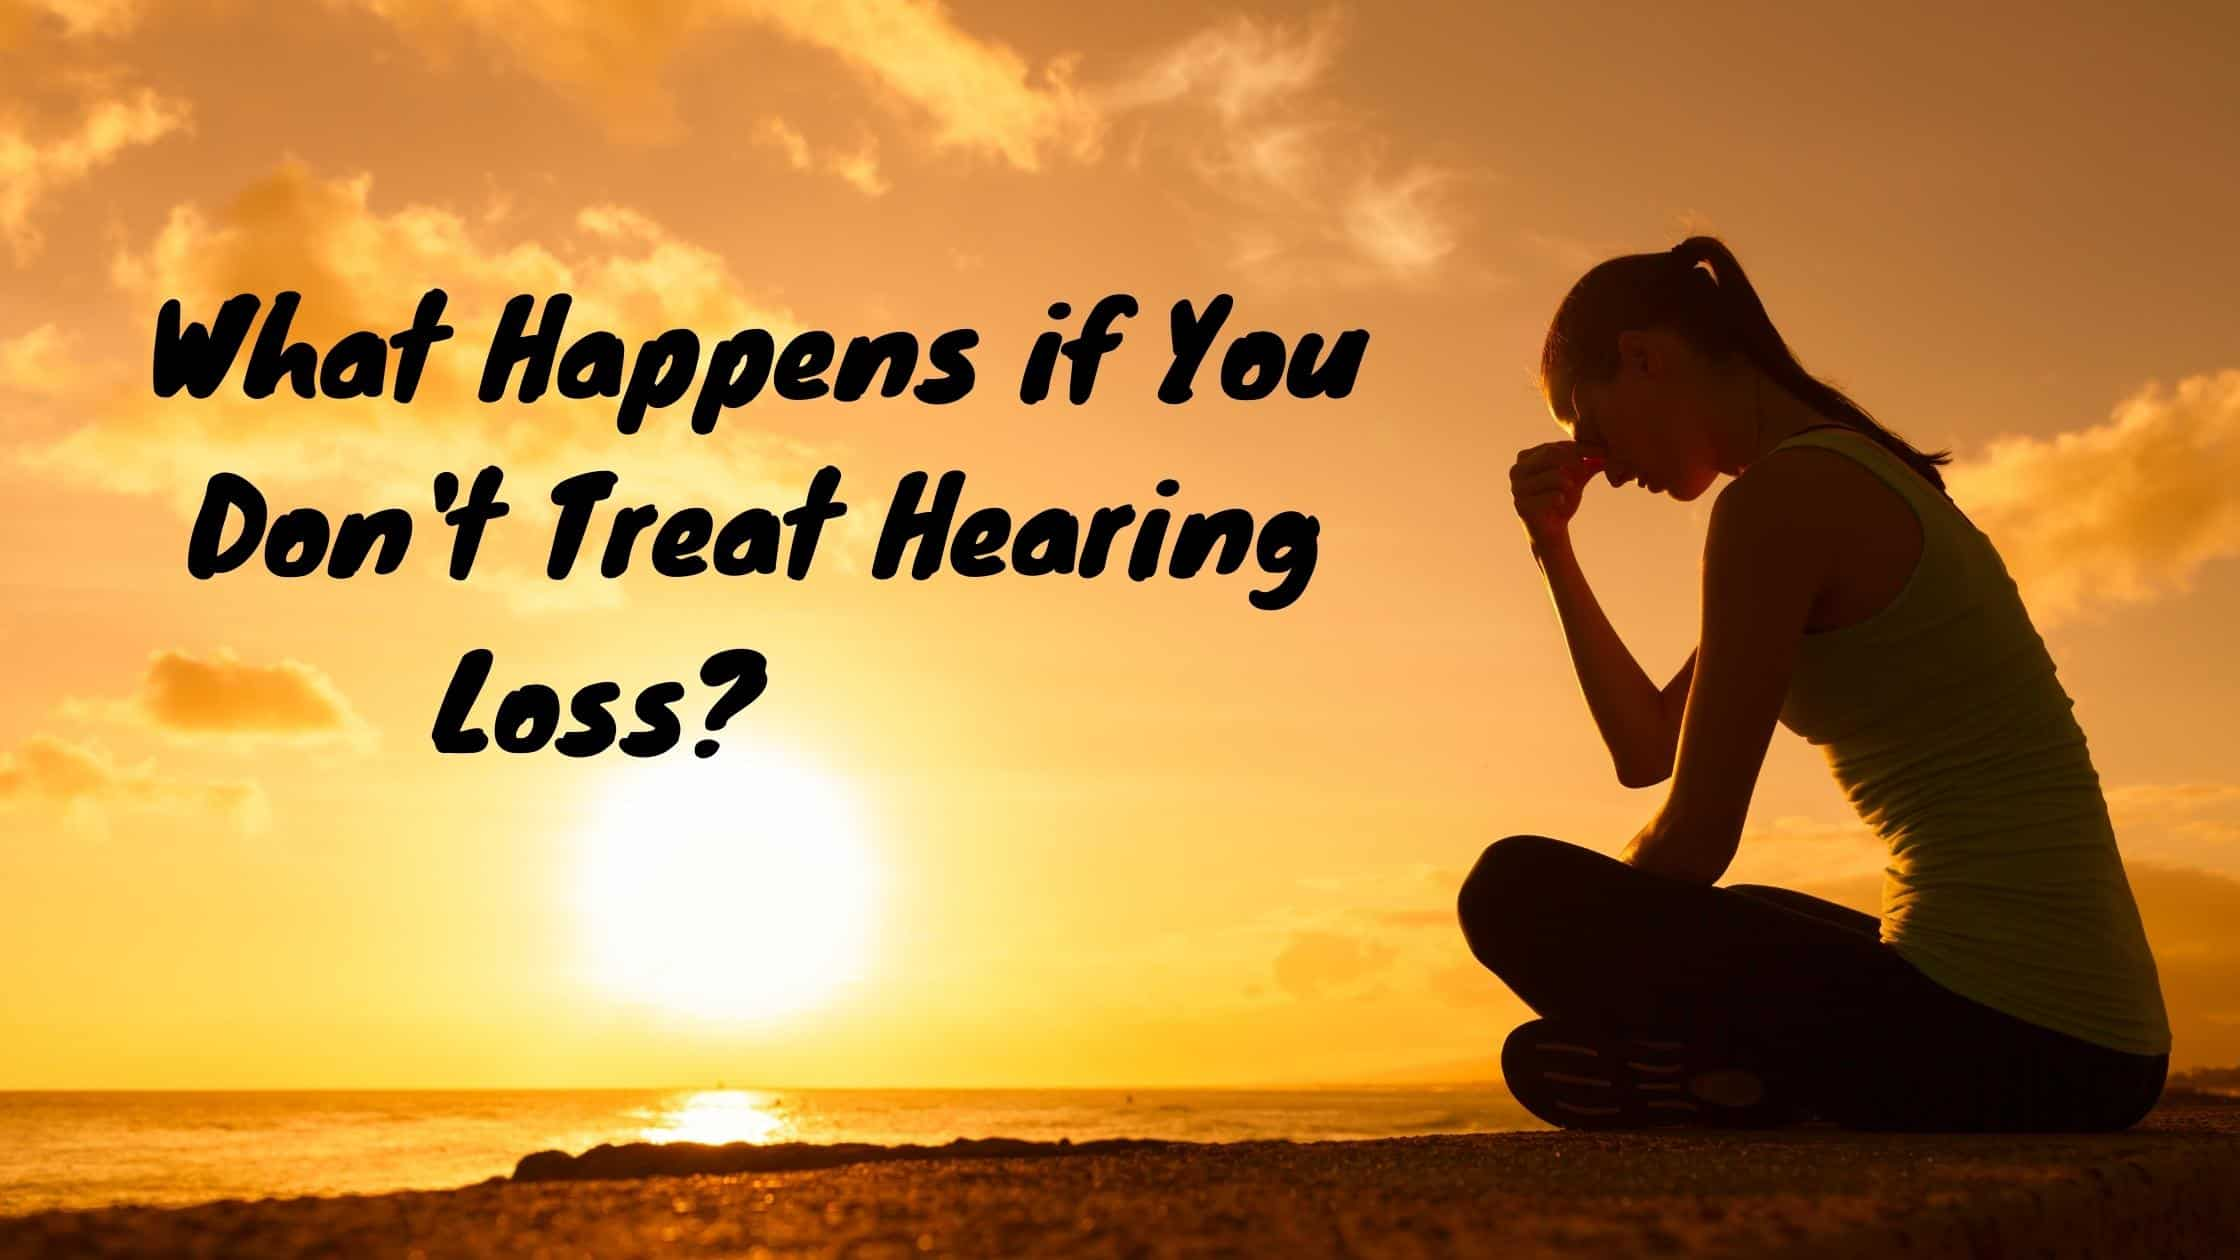 What Happens if You Don't Treat Hearing Loss